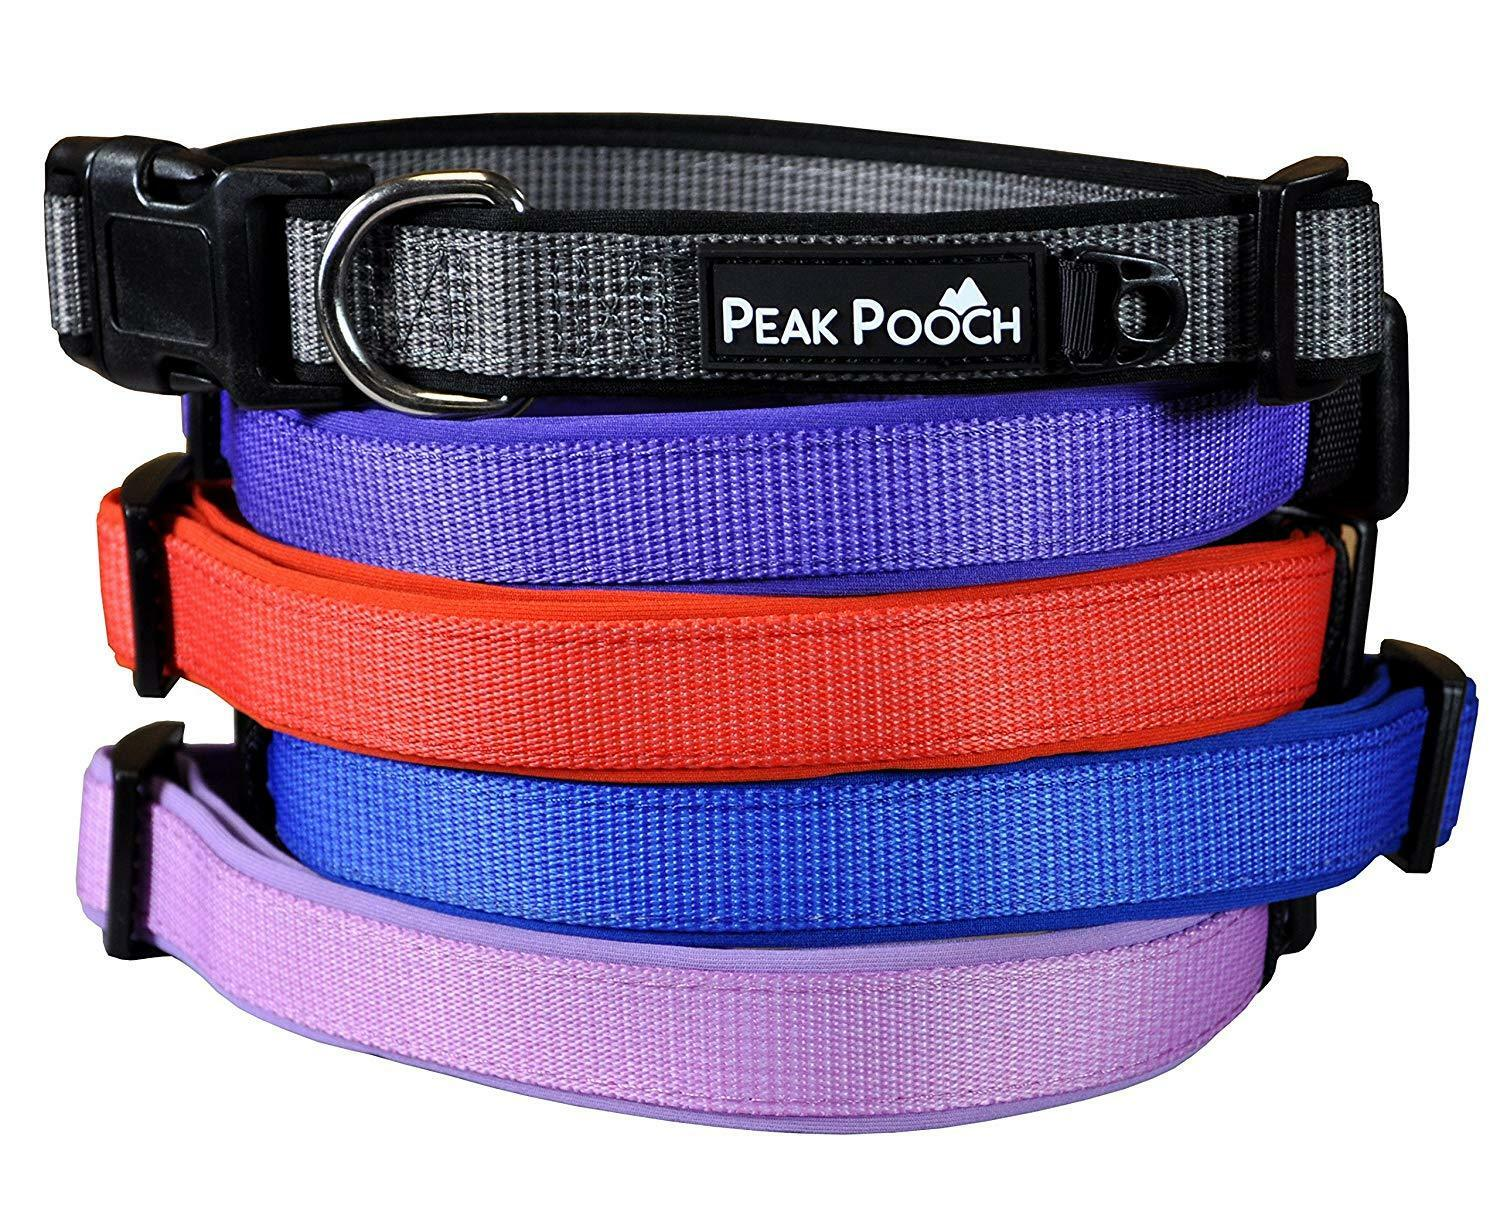 Peak Pooch Premium Designer Dog Collars Soft Padded Adjustab